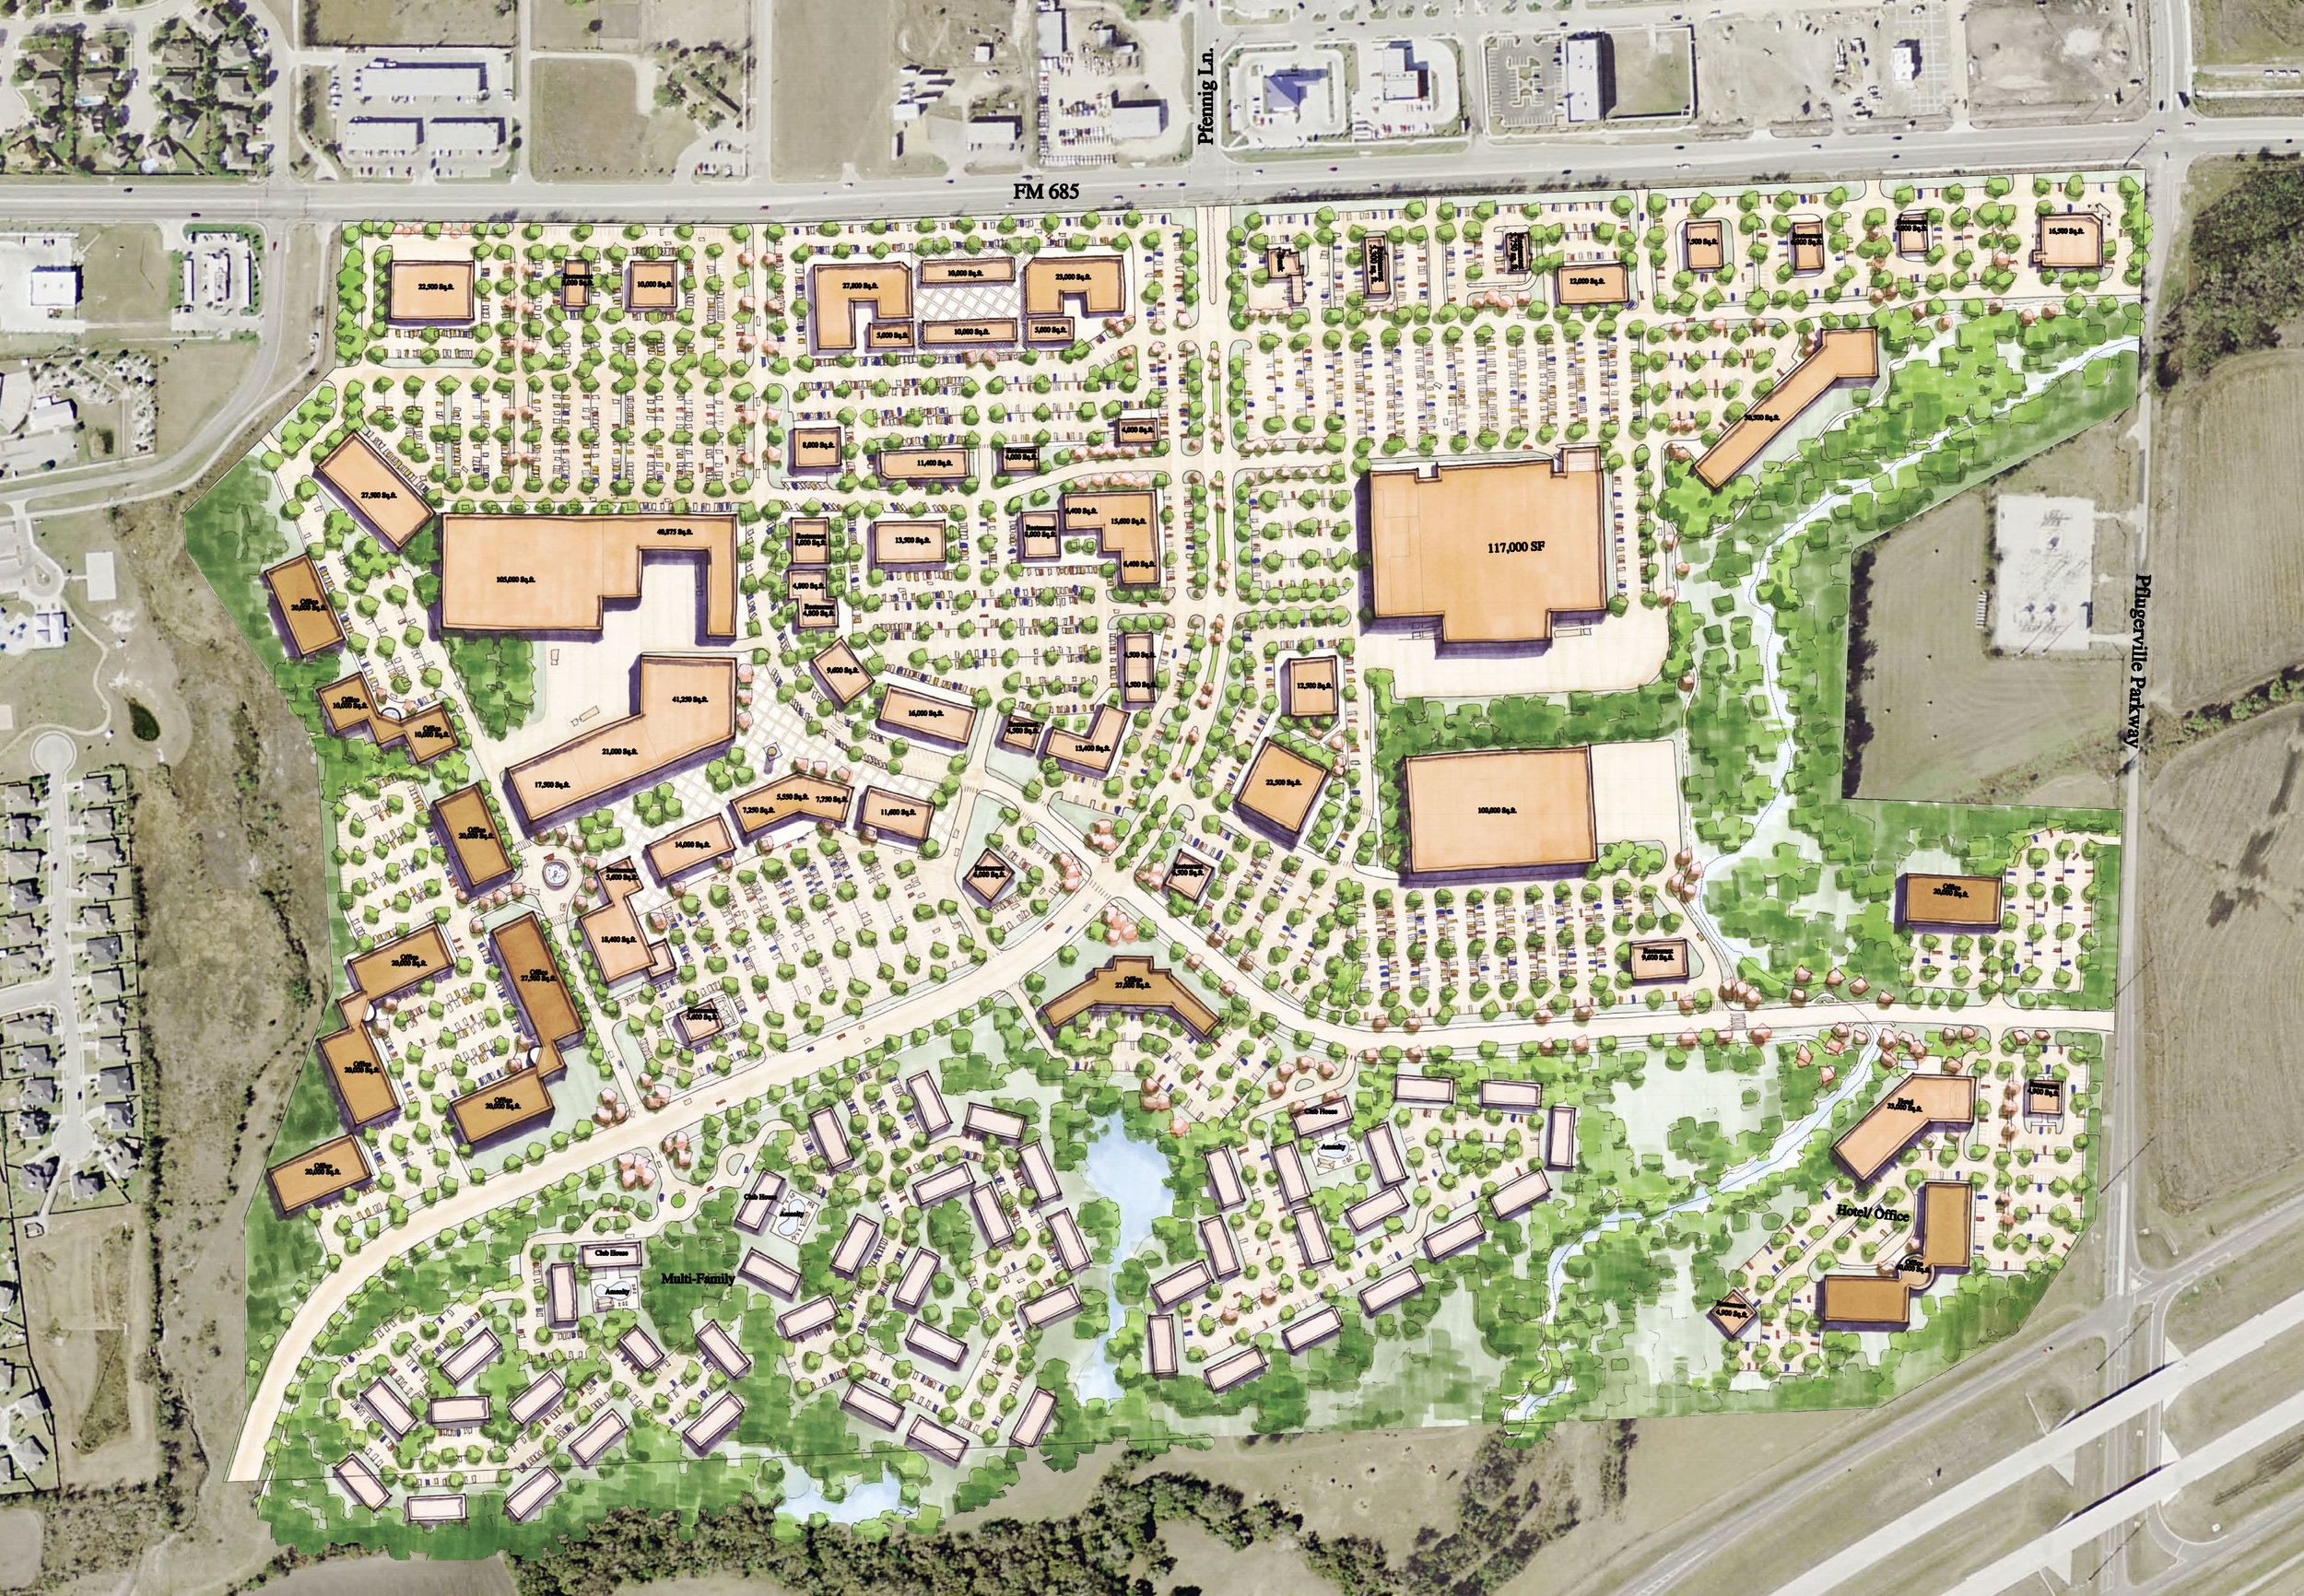 TOWN CENTER MASTER PLAN RENDERING.jpg